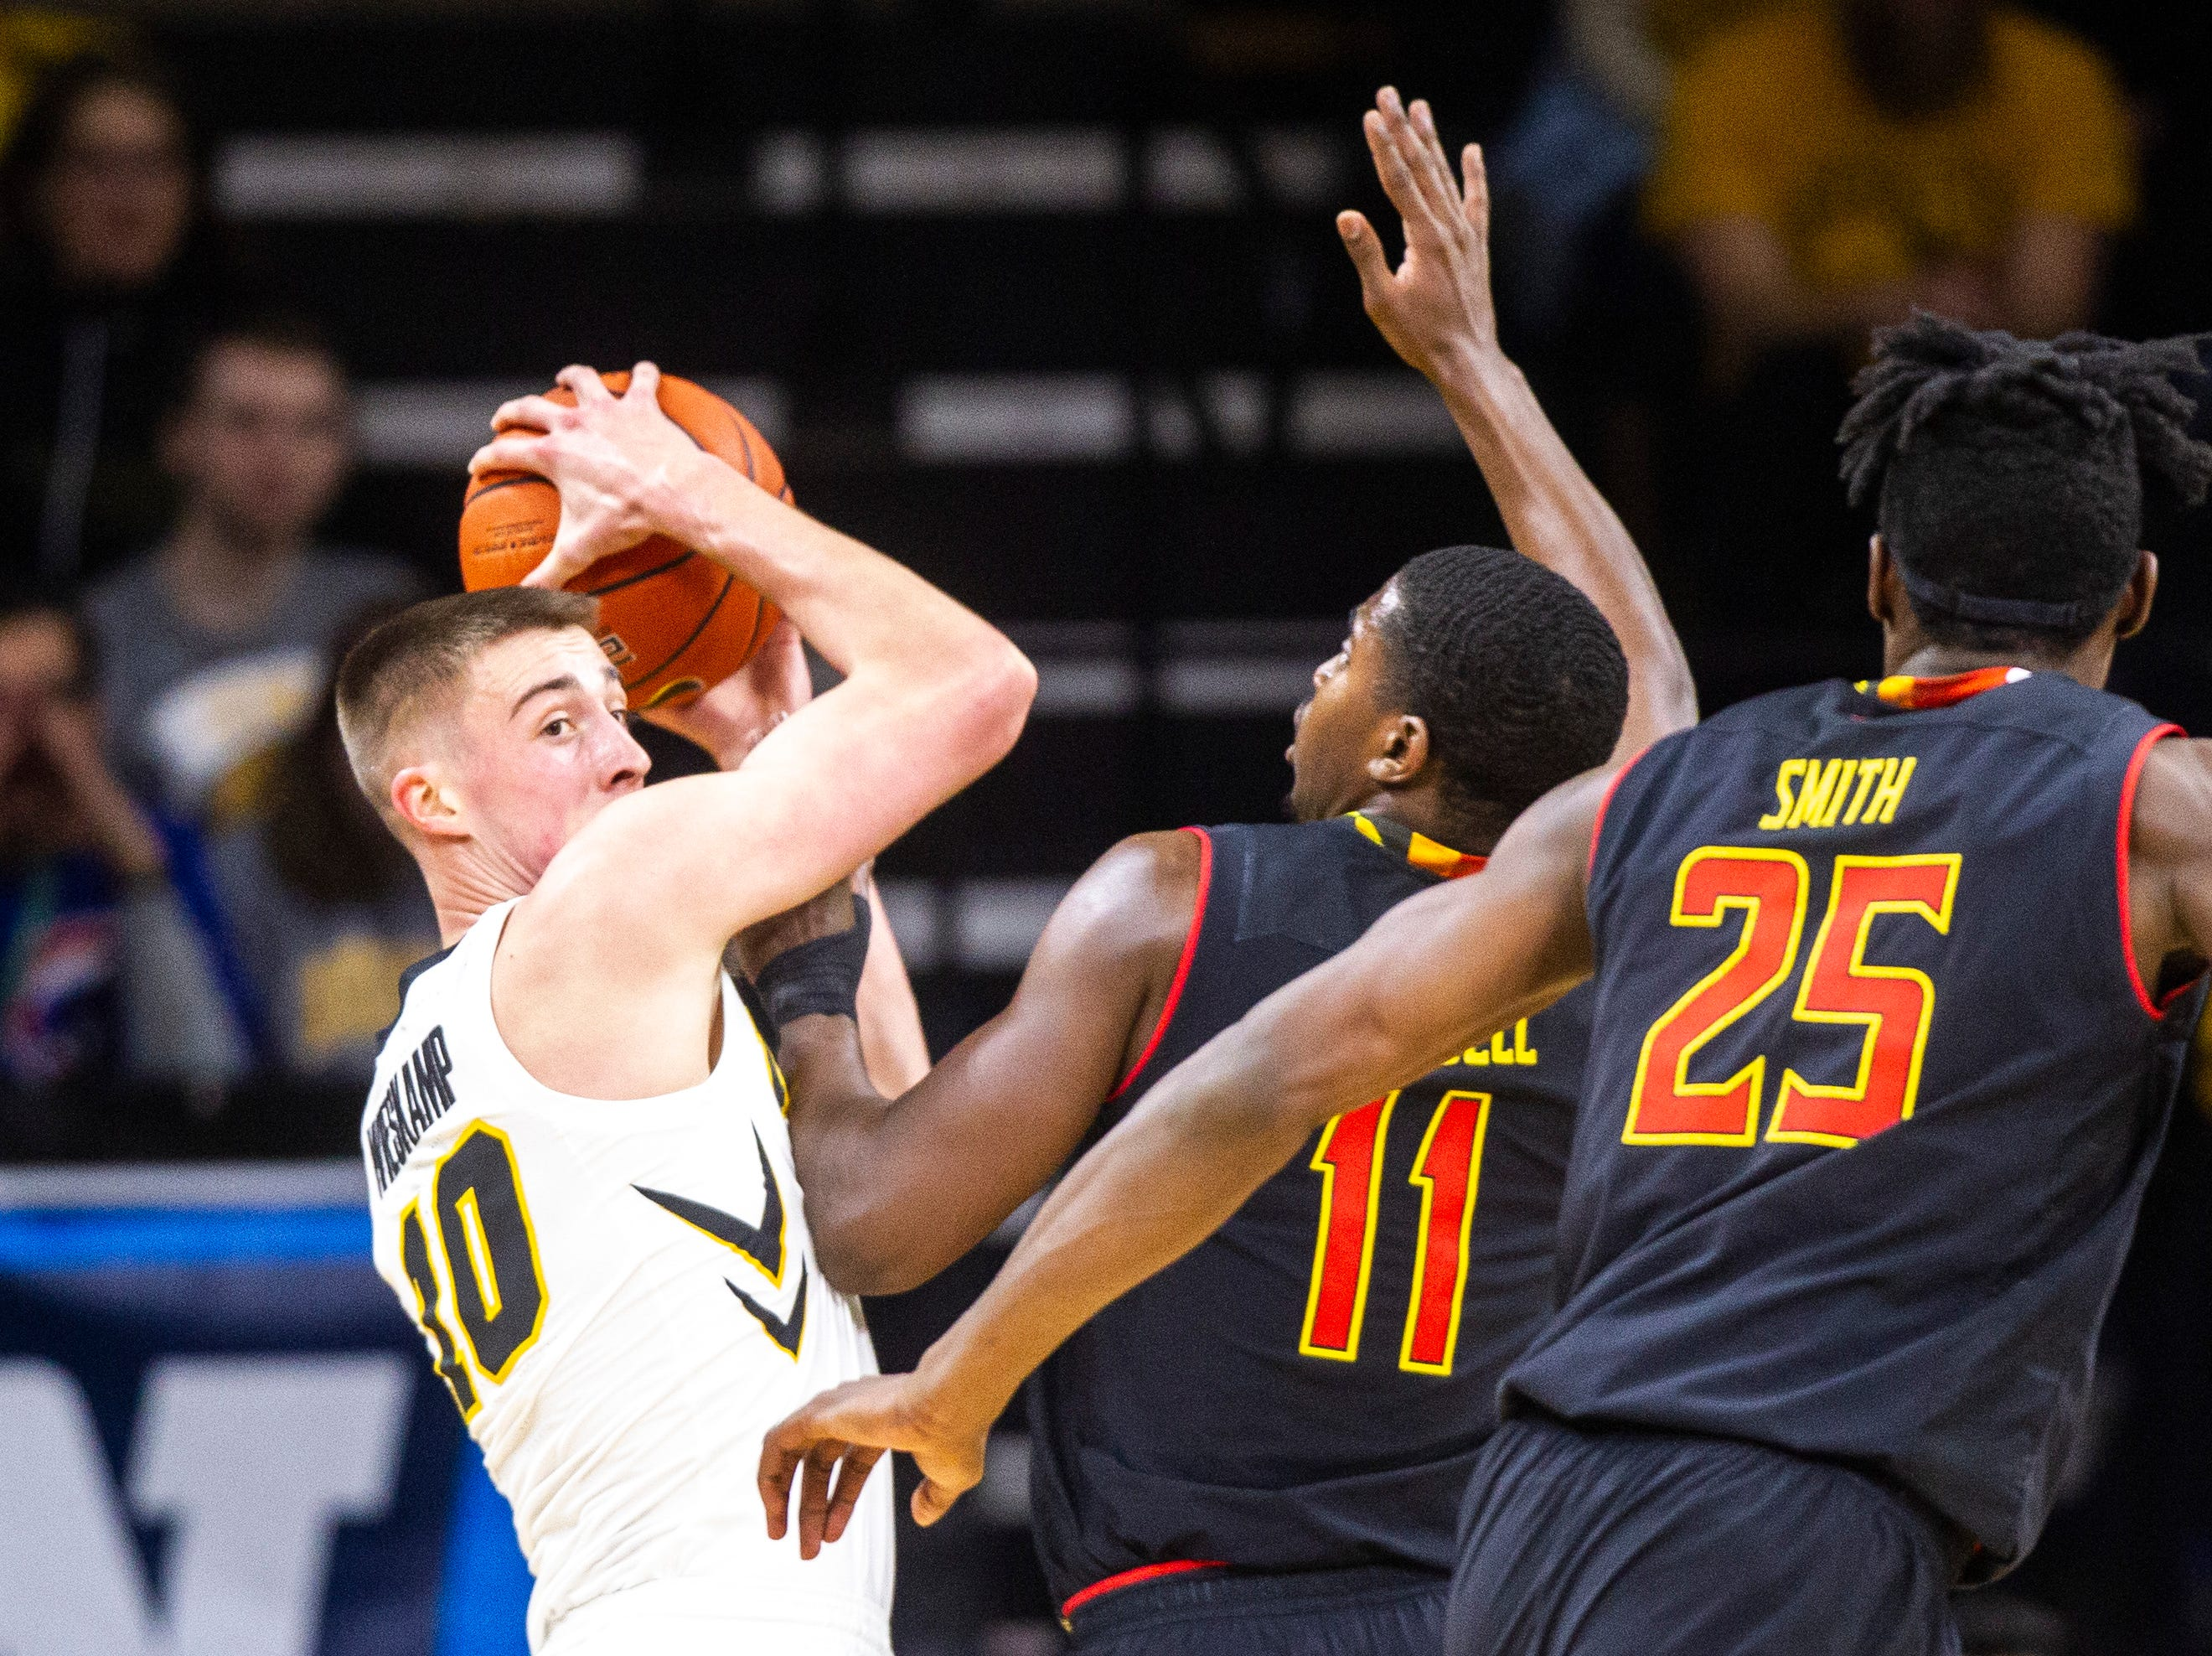 Iowa guard Joe Wieskamp (10) looks to get a pass out while Maryland guard Darryl Morsell (11) and Maryland forward Jalen Smith (25) defend during a NCAA Big Ten Conference men's basketball game on Tuesday, Feb. 19, 2019 at Carver-Hawkeye Arena in Iowa City, Iowa.